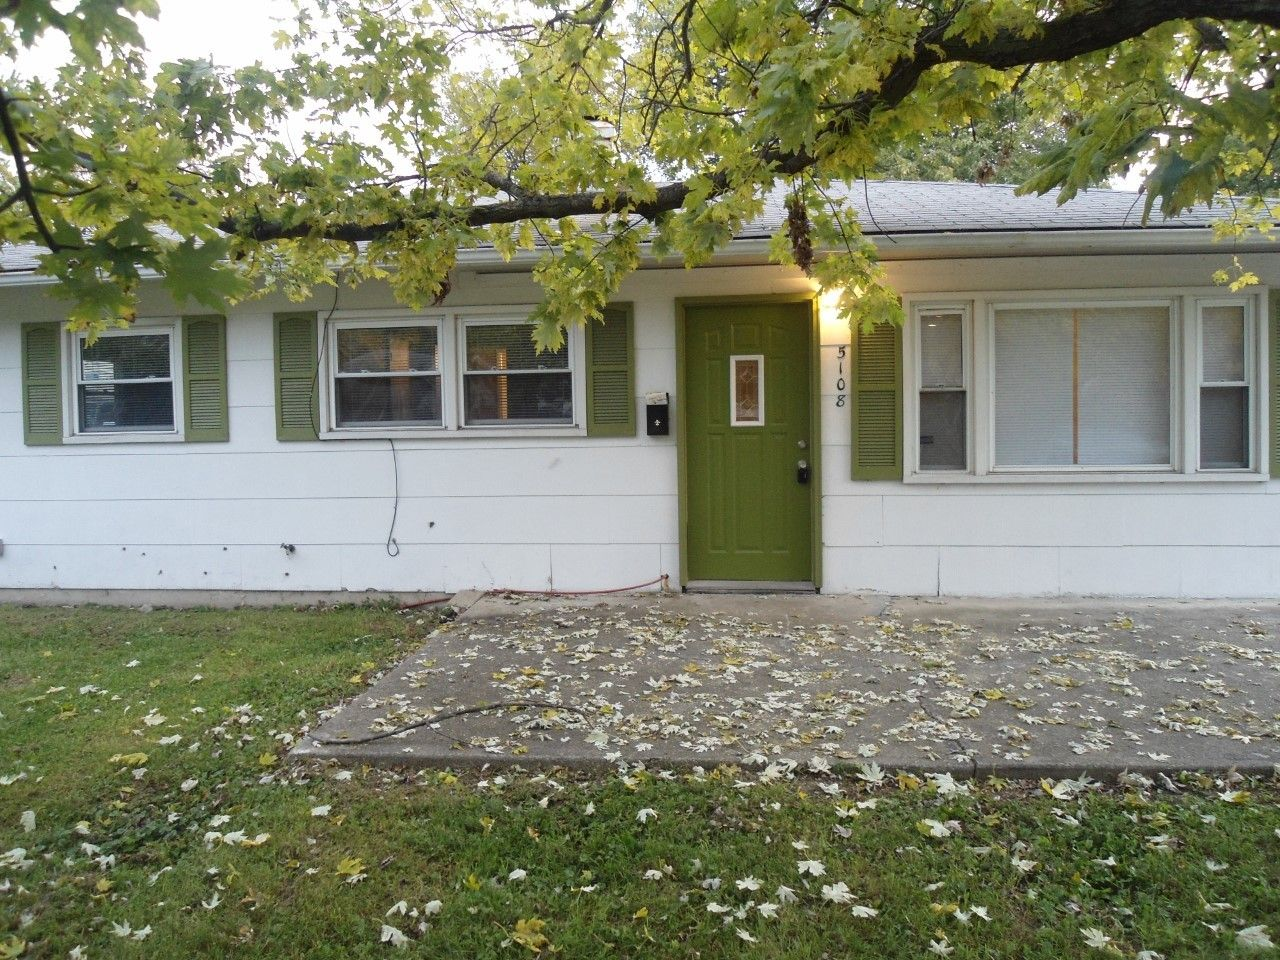 5108 w 32nd st indianapolis in 46224 3 bedroom apartment - 3 bedroom apartments downtown indianapolis ...